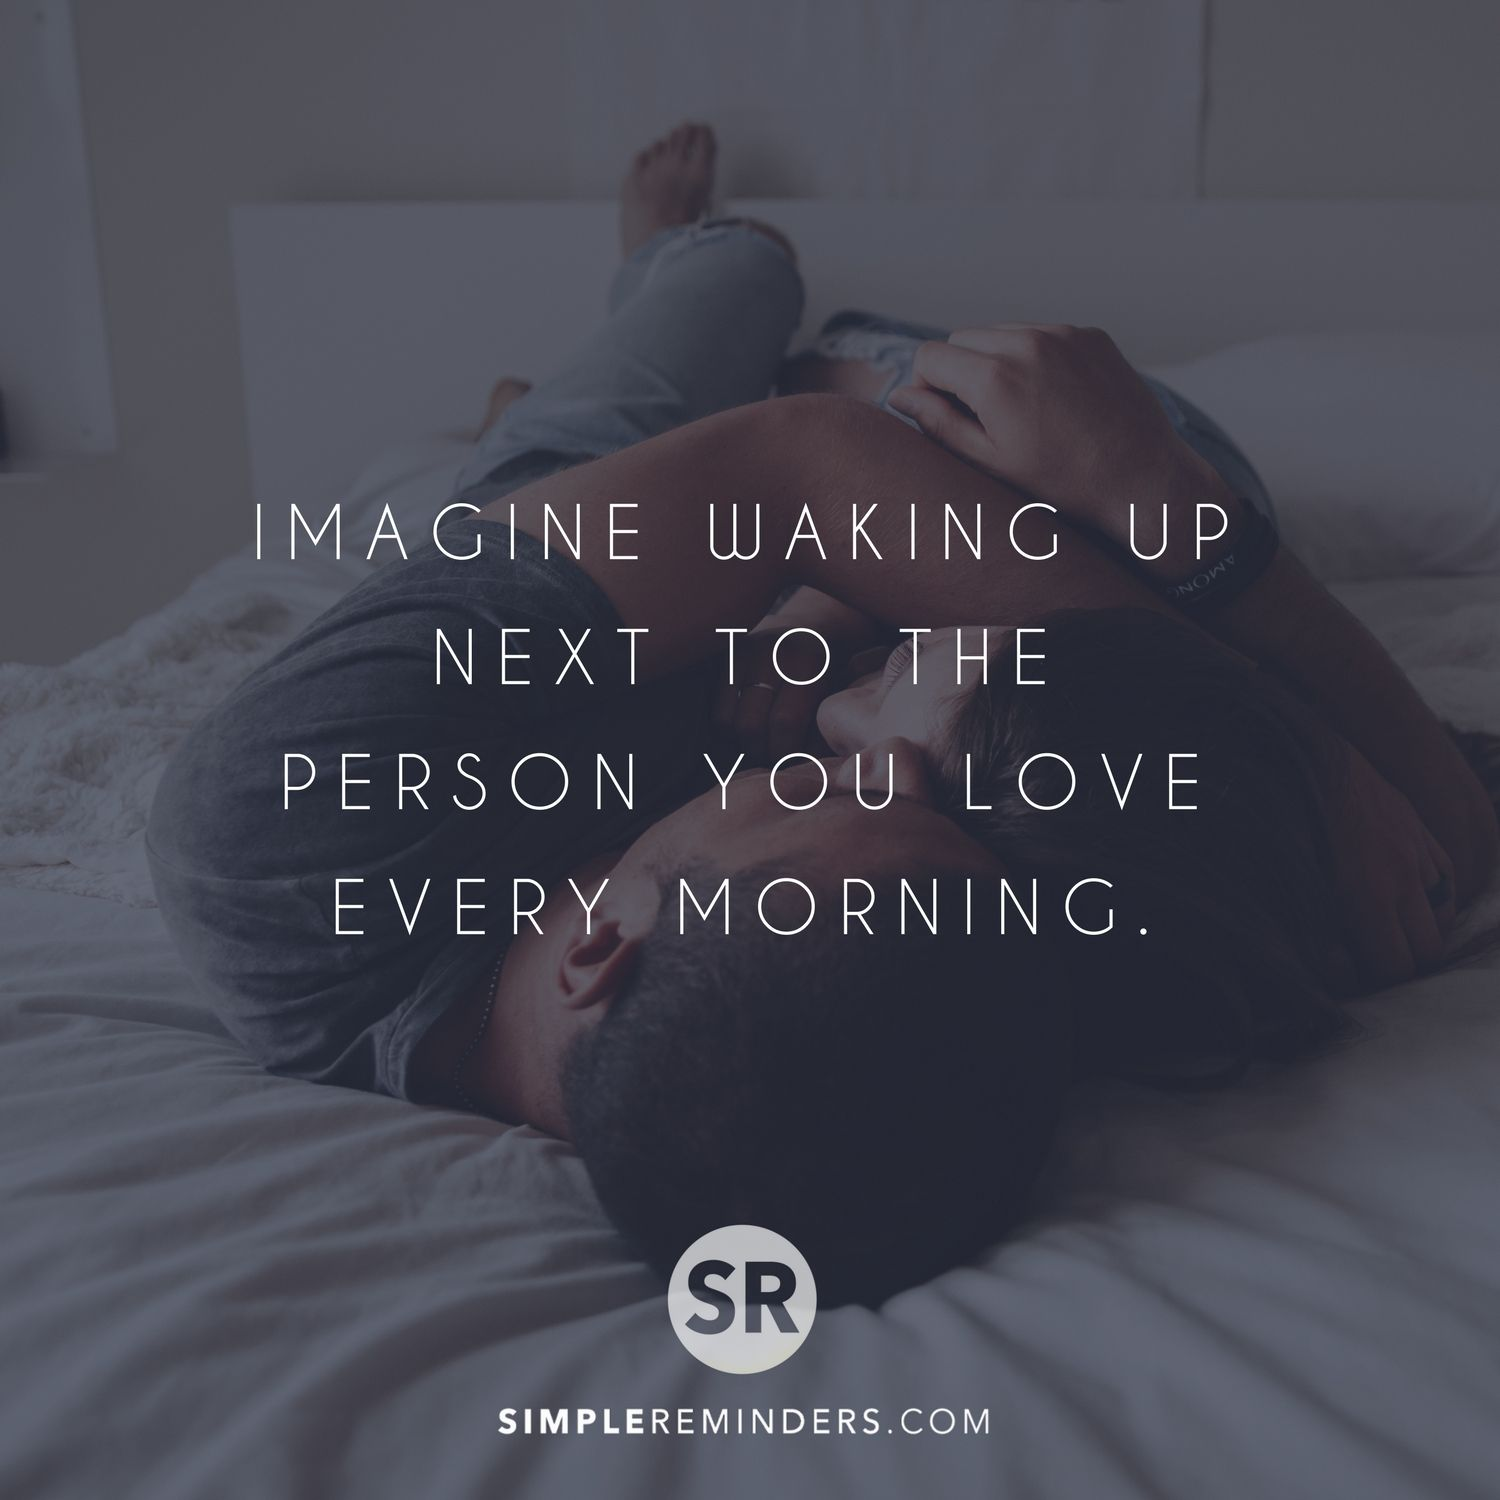 Imagine Waking Up Next To The Person You Love Every Morning Simplereminders Inspiration Quo Waking Up Next To You Quotes Romance And Love Girlfriend Quotes